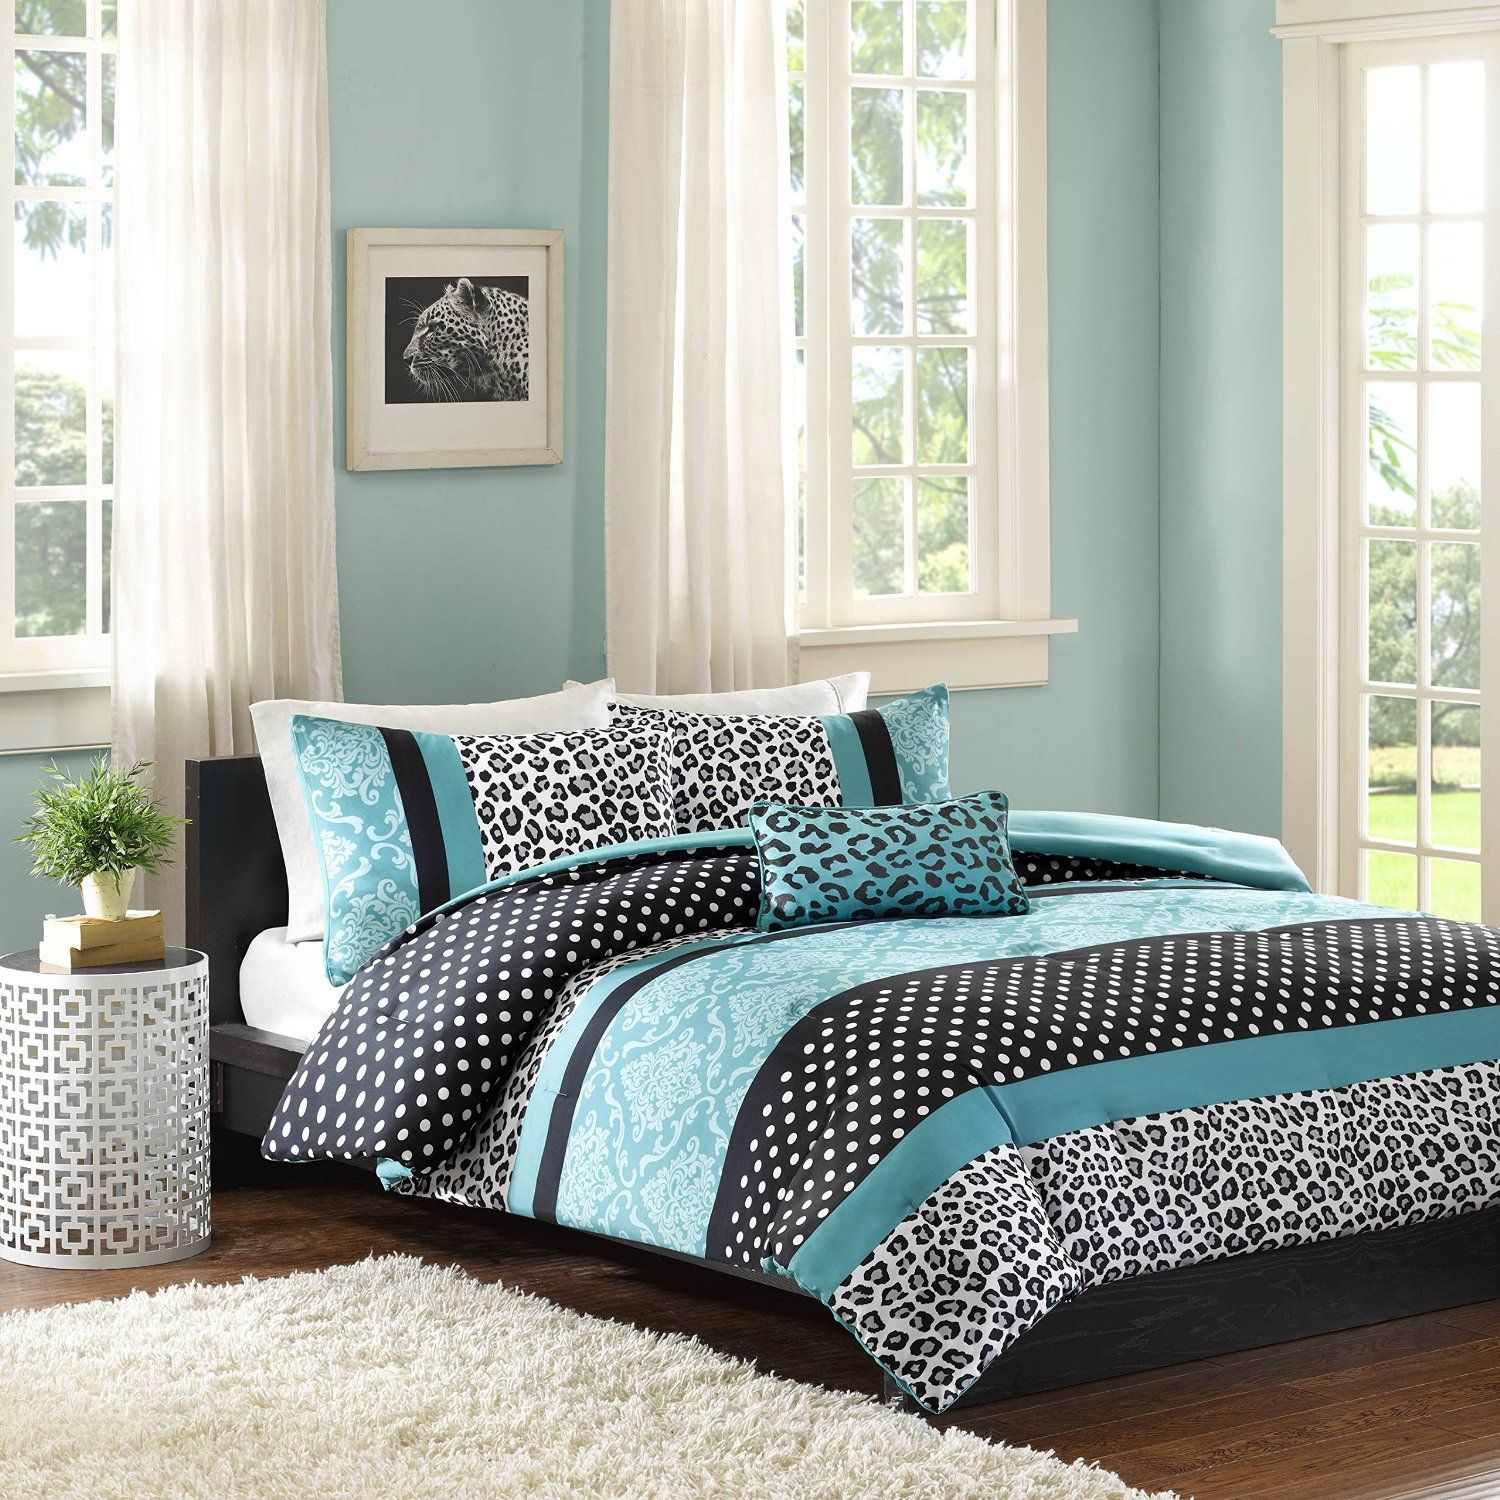 bed trend unique nifty sets teenage along tag design ing zq with plant smothery king adult bedroom romantic girls girl queen bedding also comforter teen articles